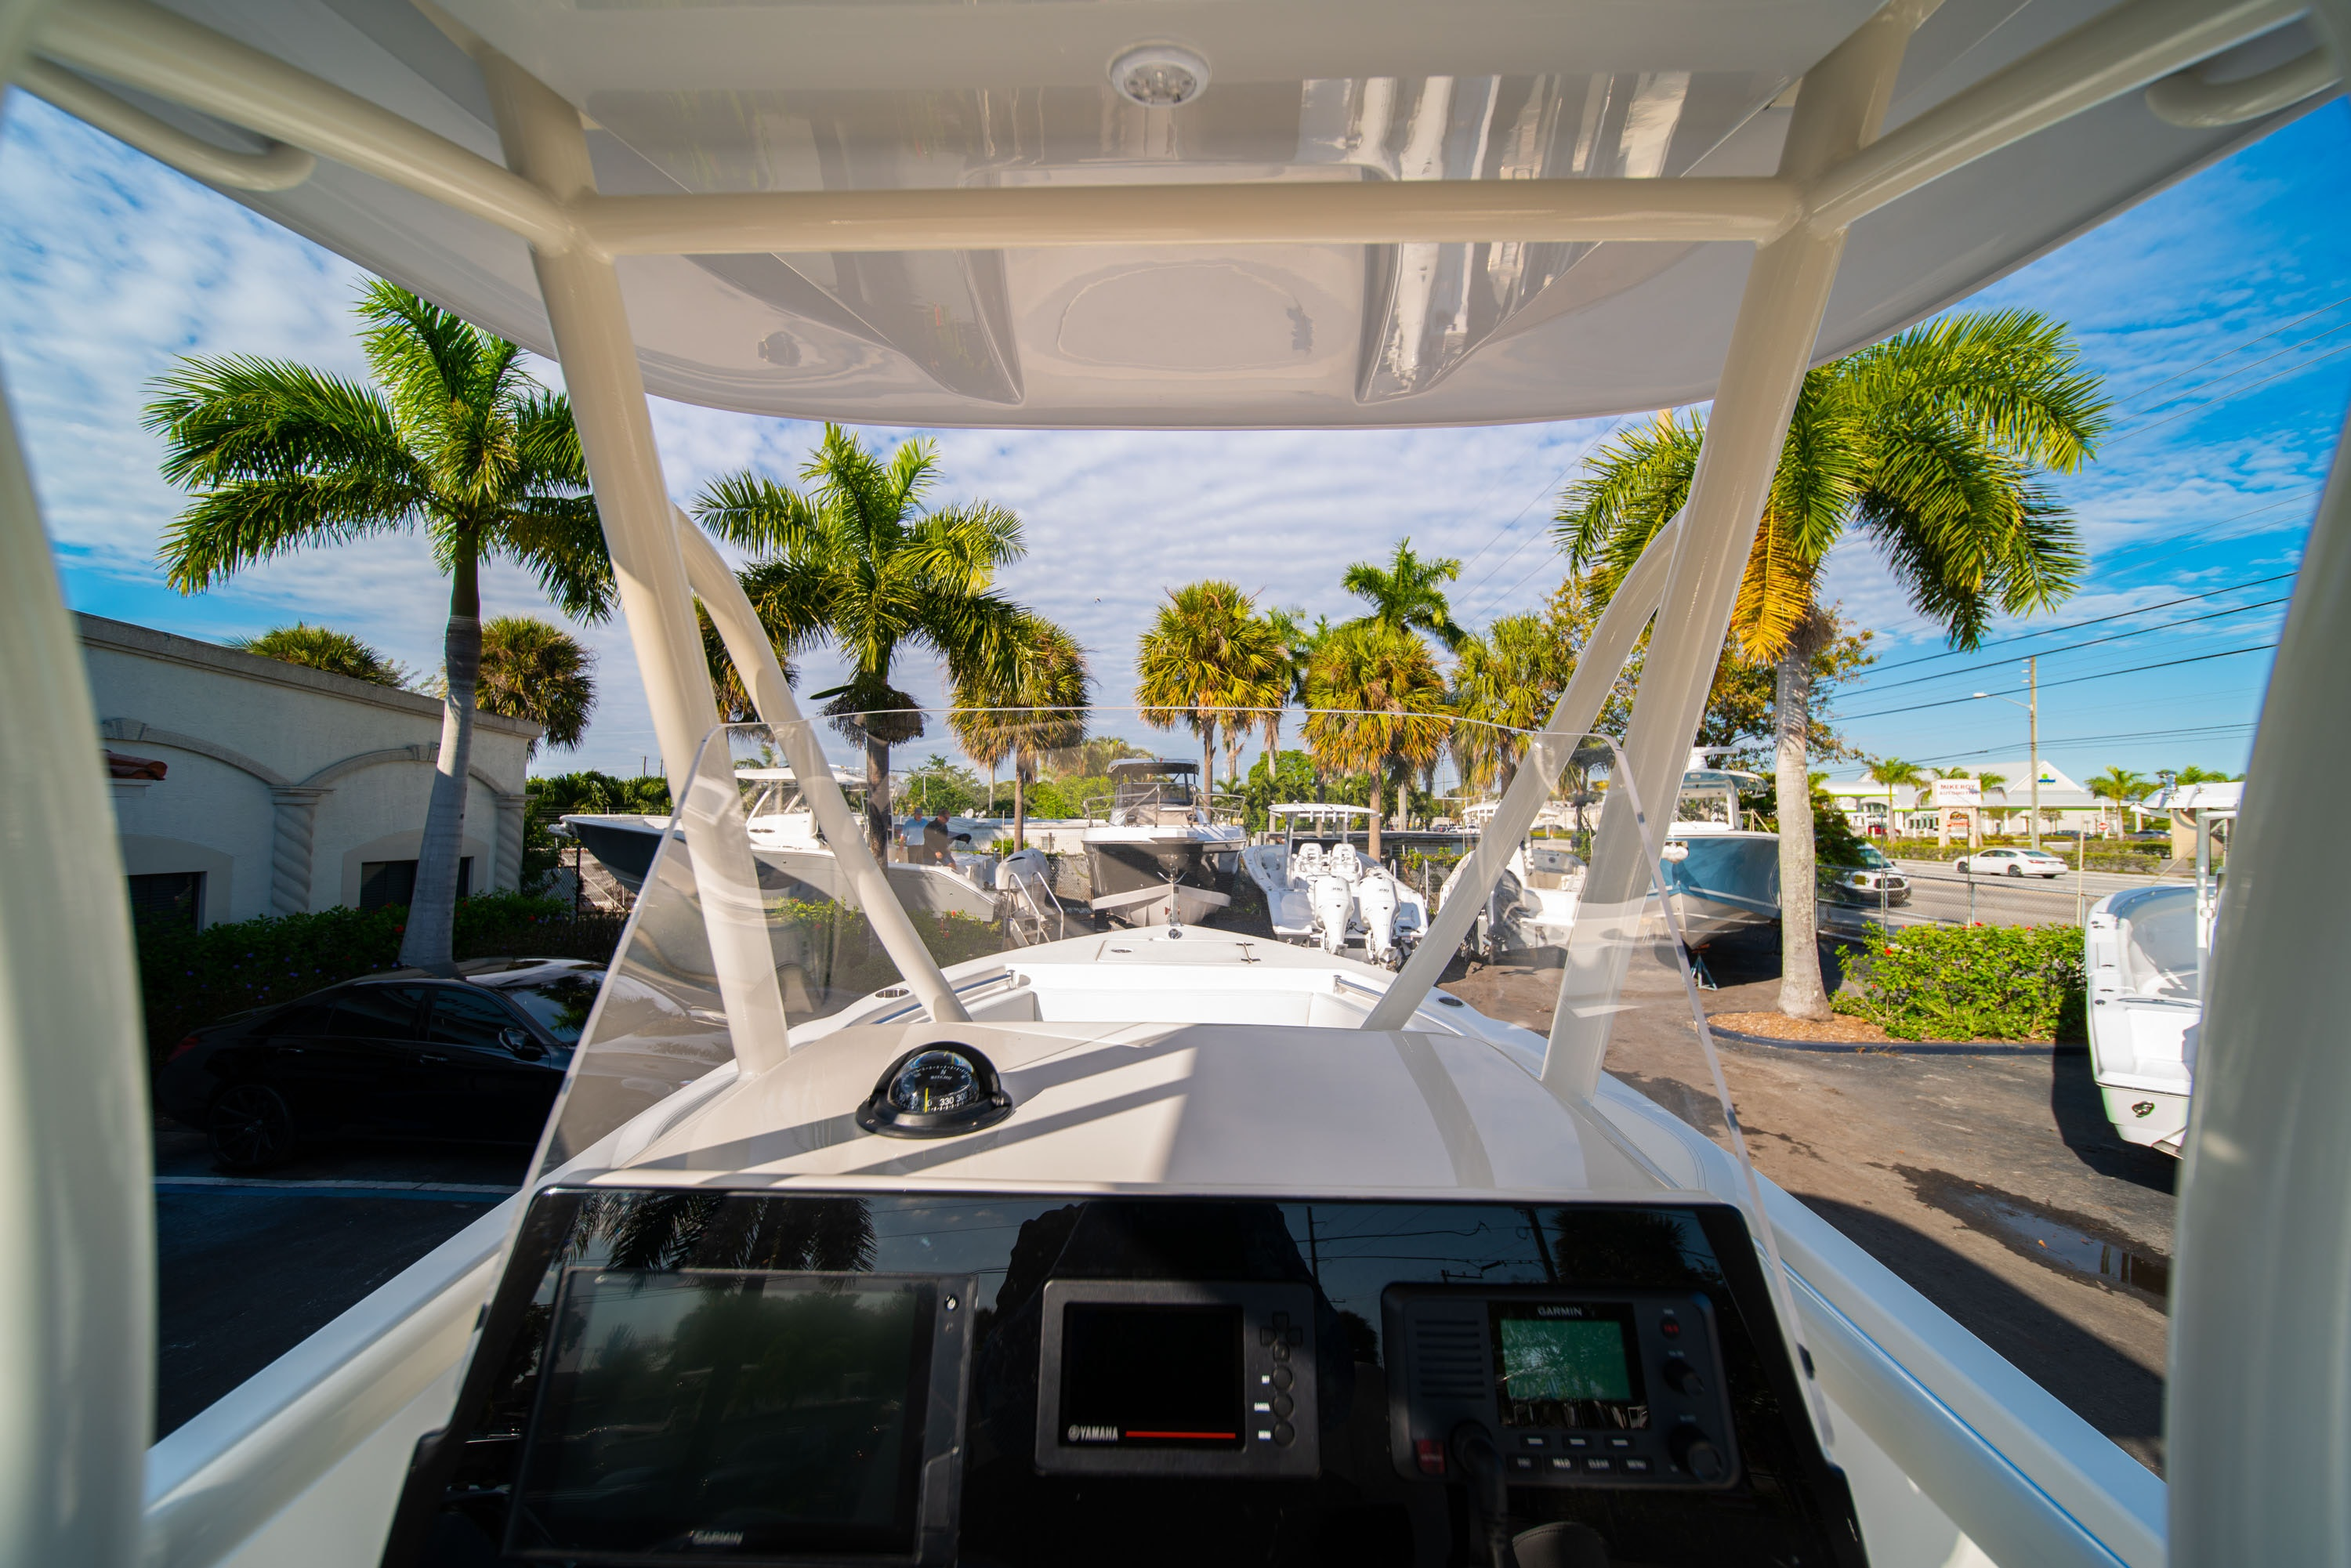 Thumbnail 24 for New 2020 Cobia 220 CC boat for sale in West Palm Beach, FL